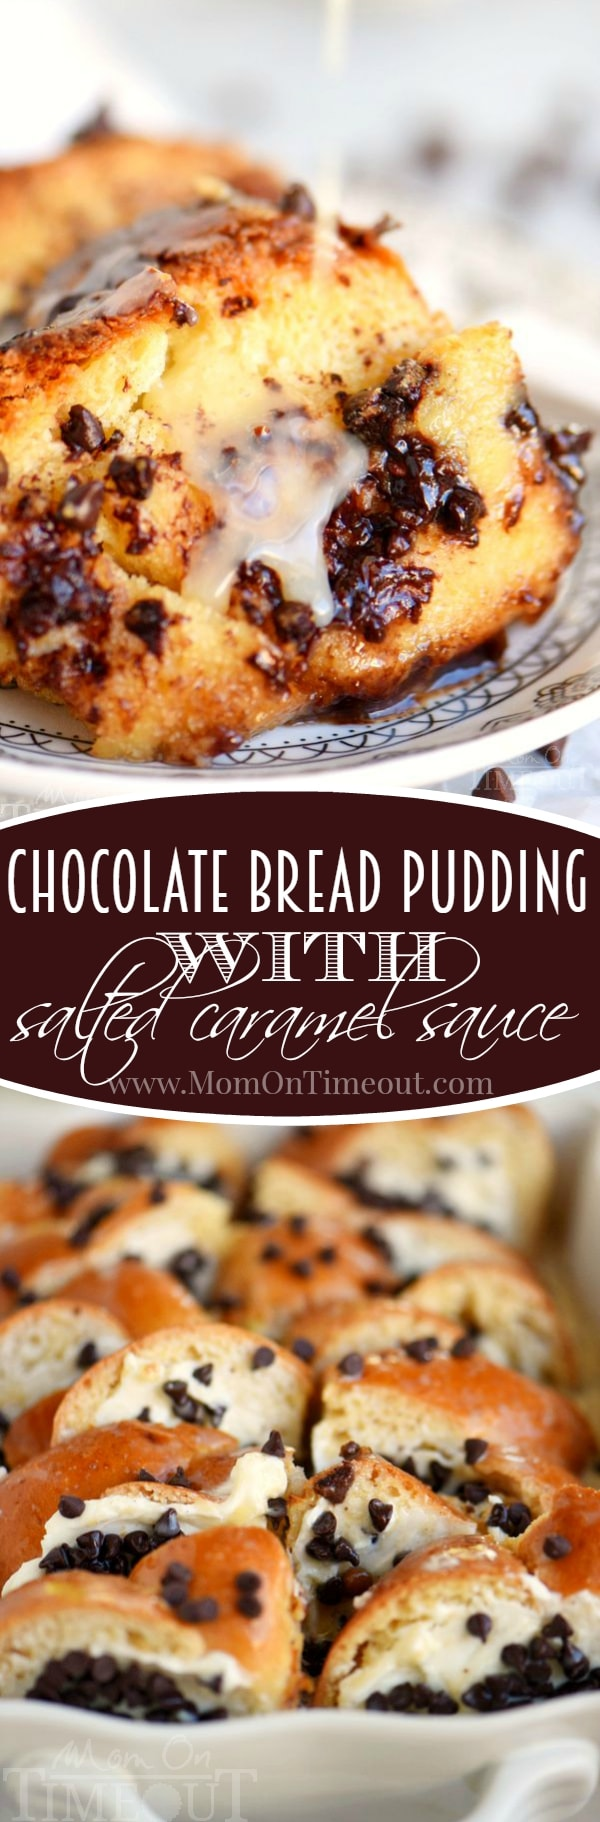 Chocolate Bread Pudding with Salted Caramel Sauce - Mom On Timeout